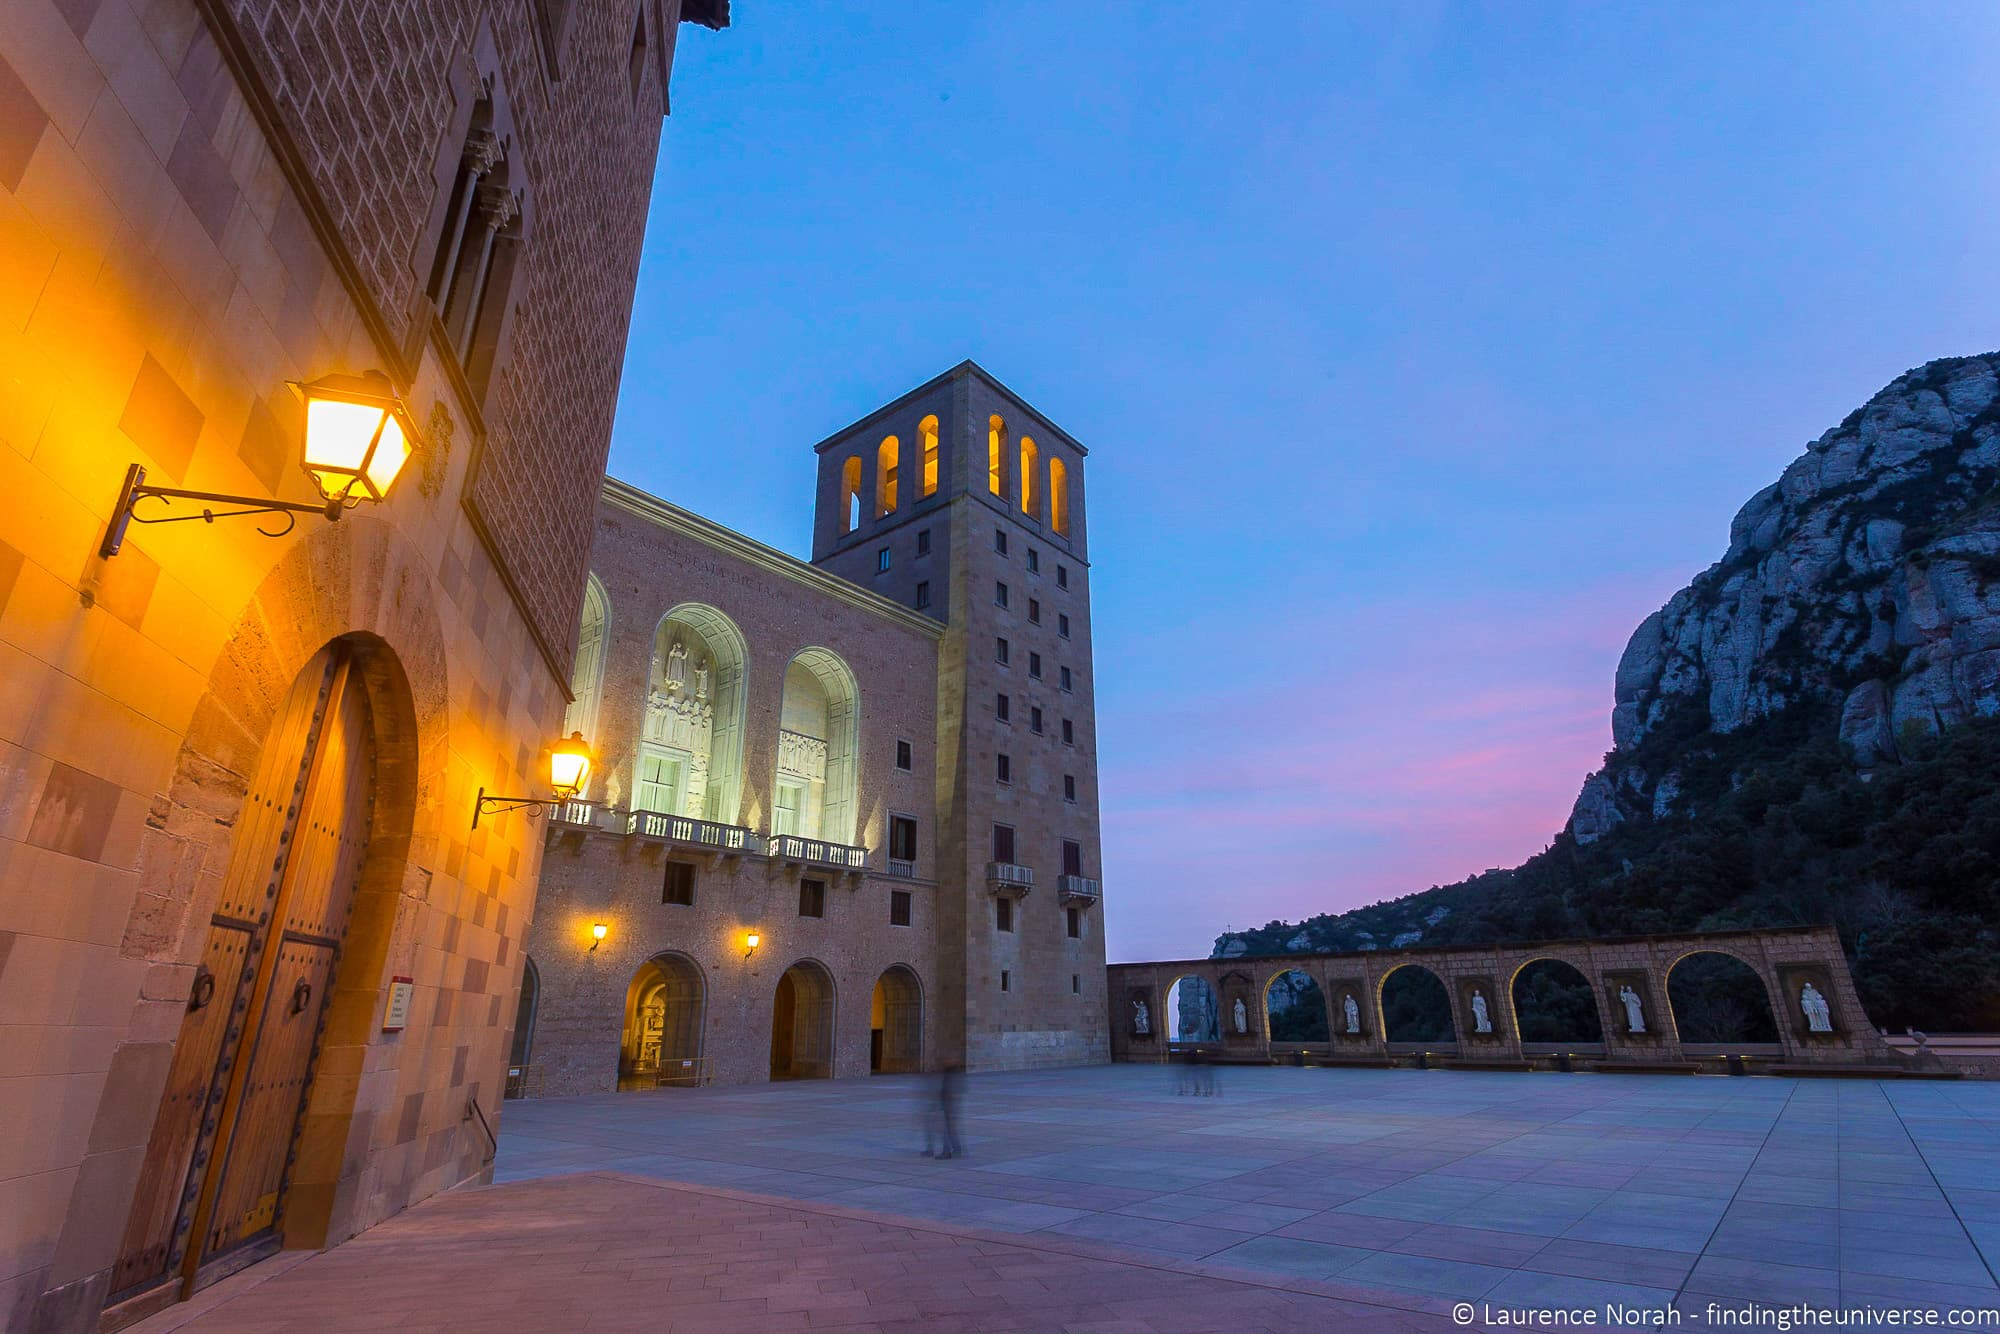 Exterior of Monserrat Abbey at sunset